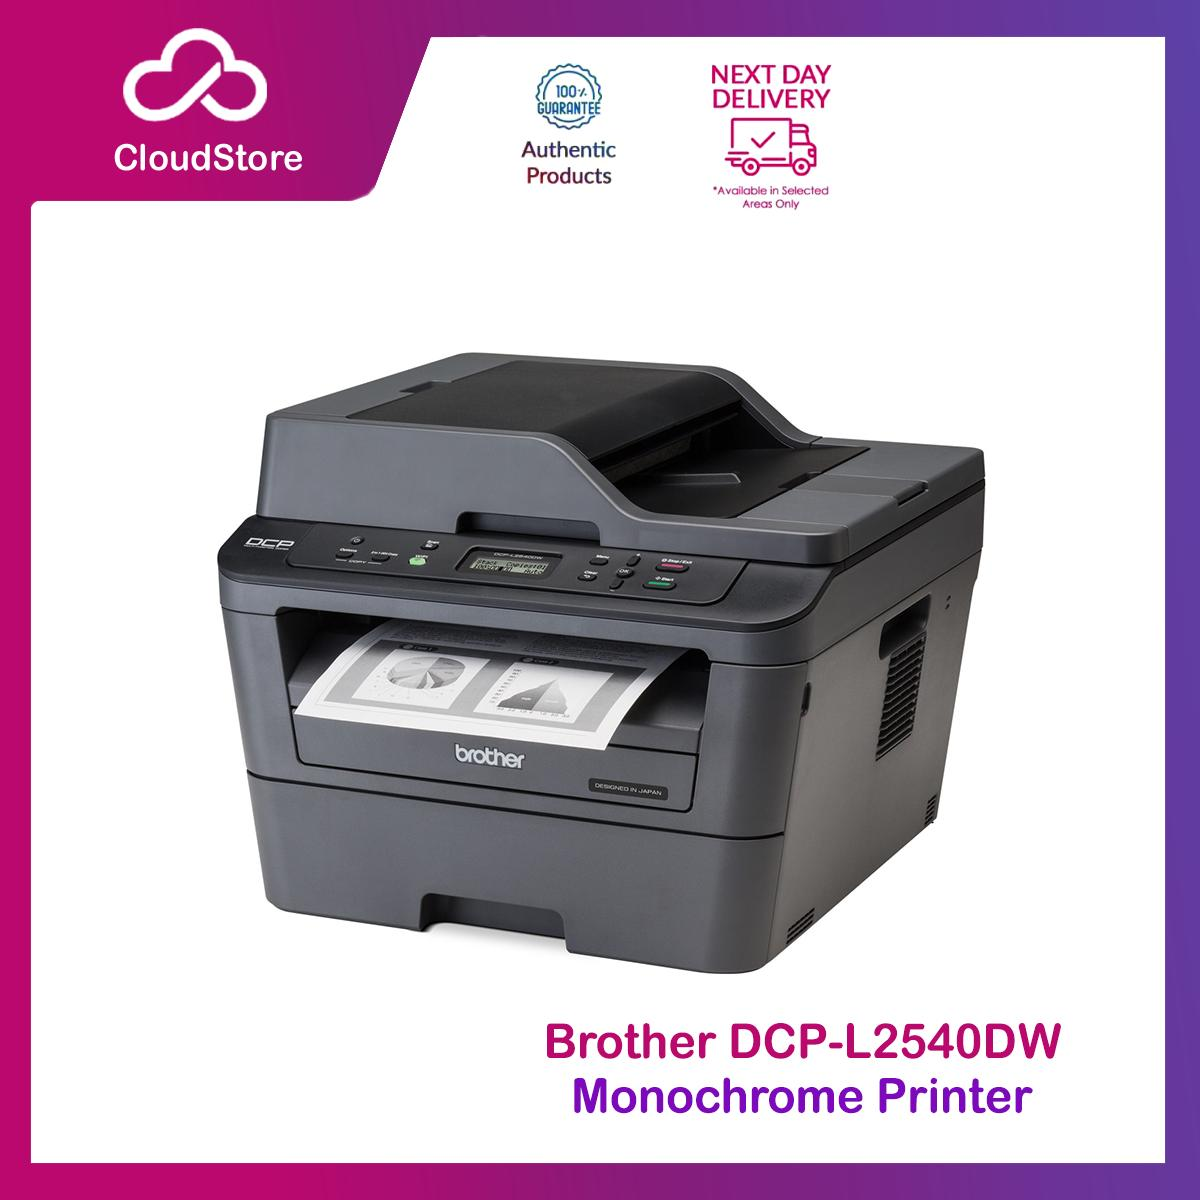 image about Laserjet Printable Vinyl identify Brother DCP L2540DW 3 within 1 Monochrome Laser Printer with 2 sided Printing and Wi-fi Networking - DCP-L2540DW Printer